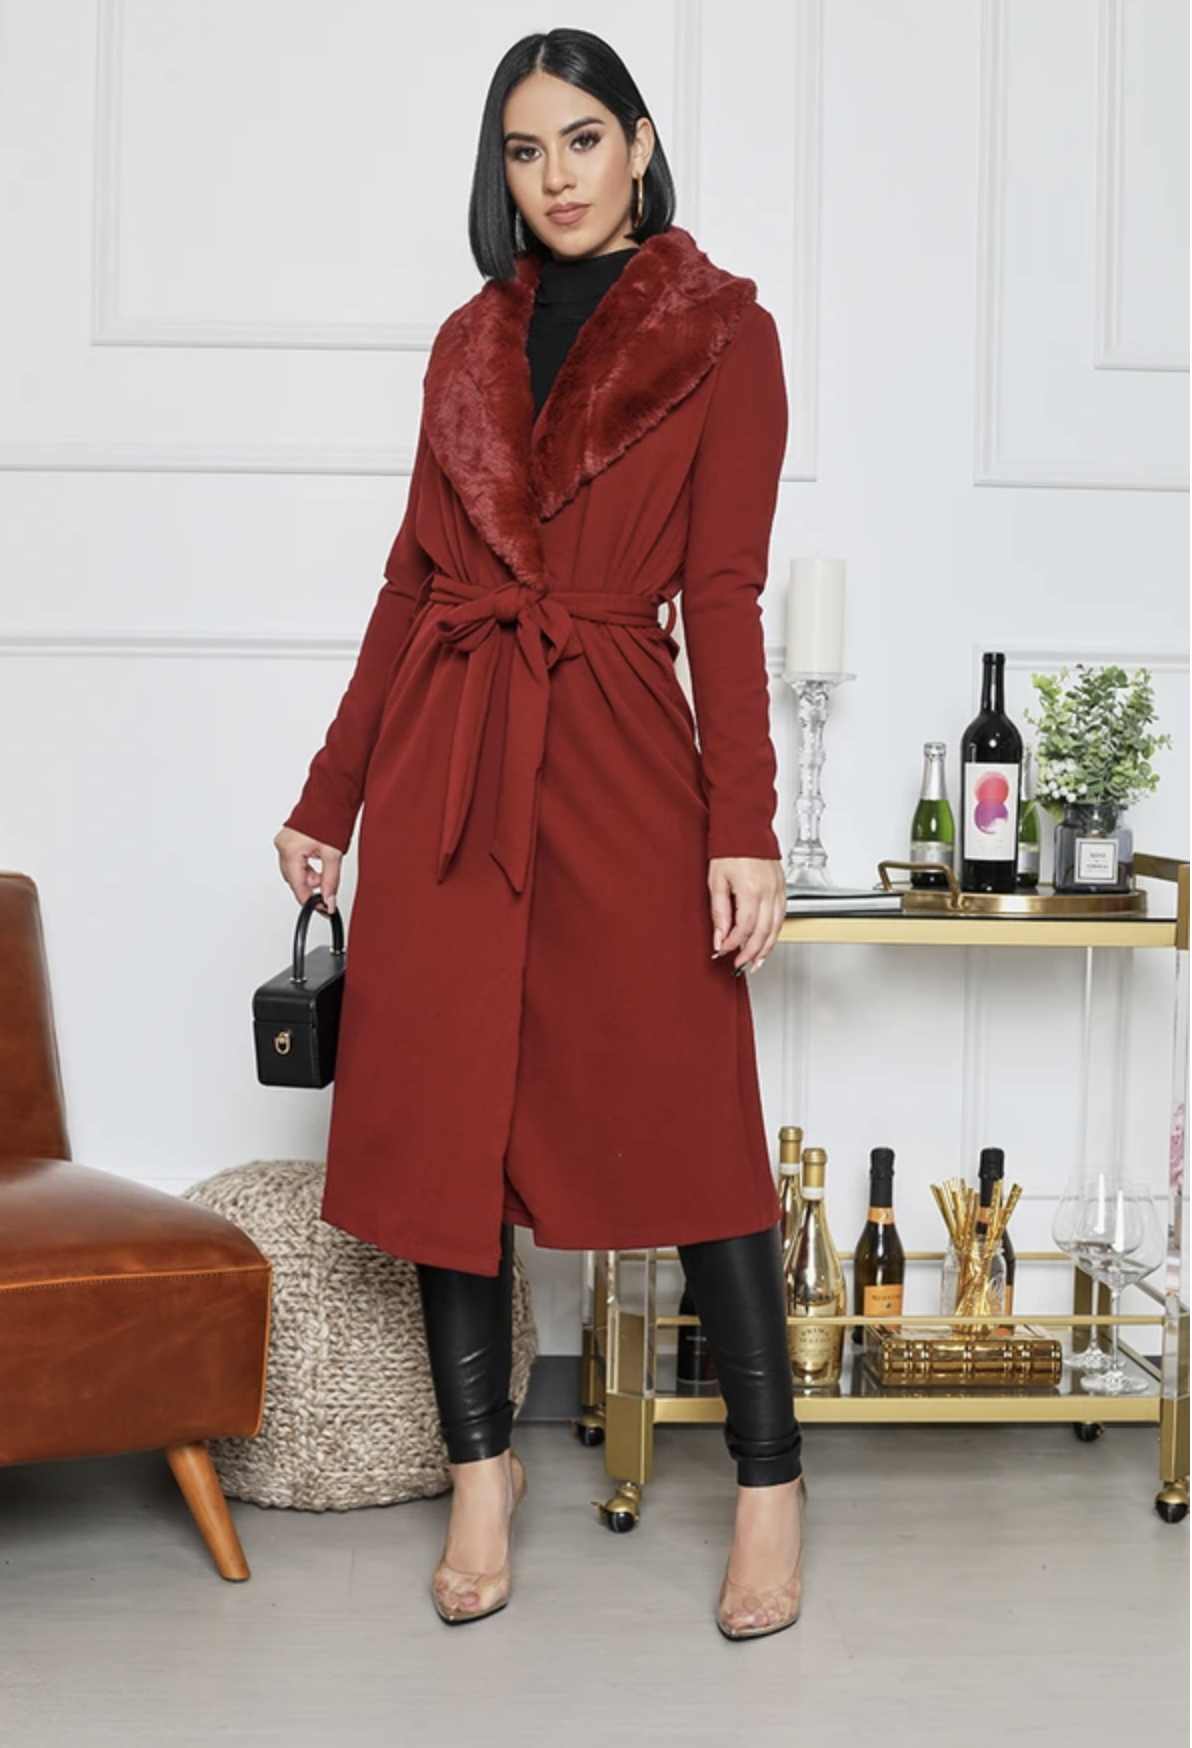 Model in burgundy midi-length tie-waist cardigan with a faux fur collar